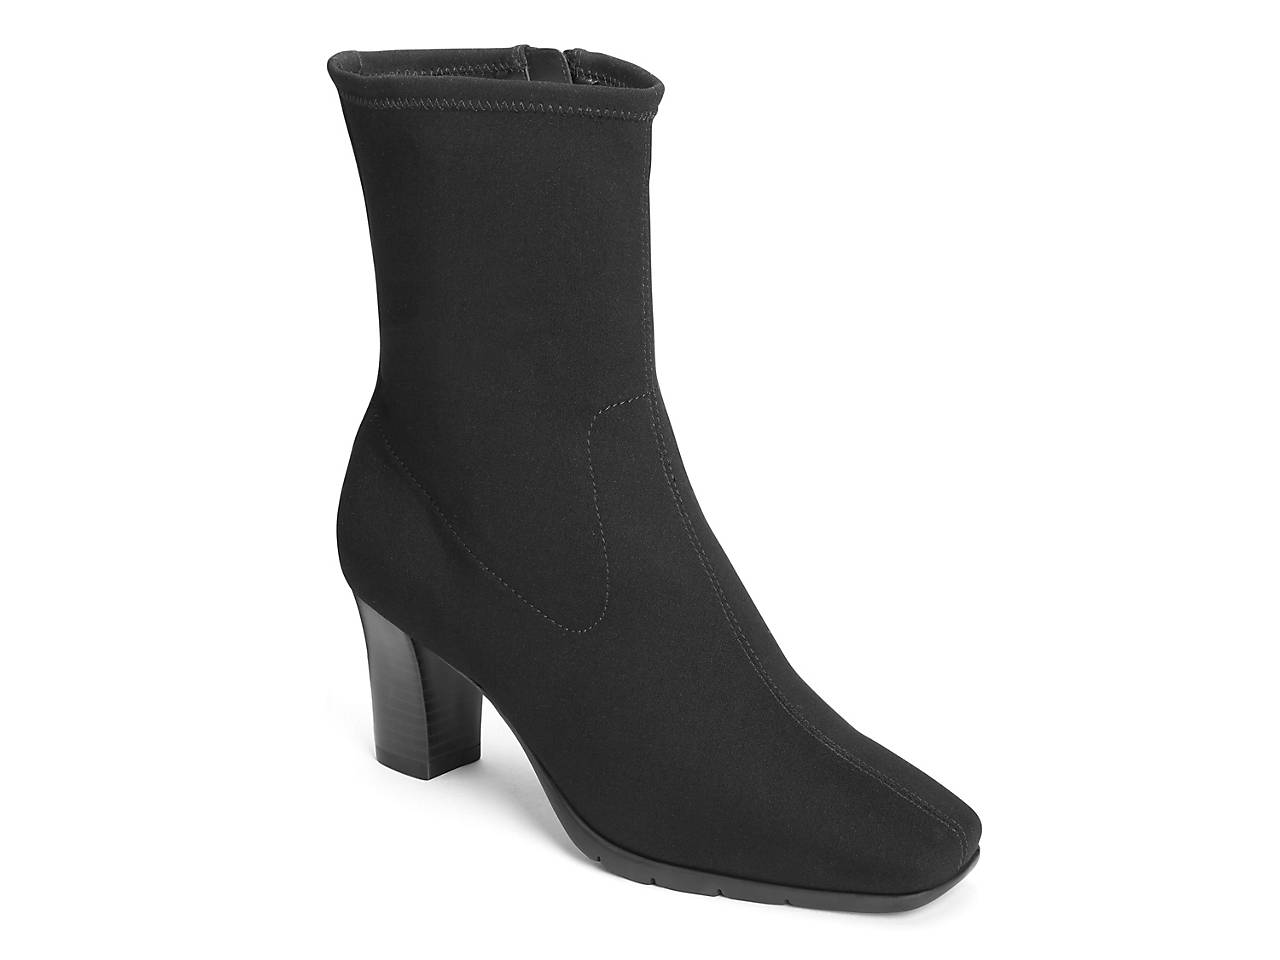 A2 By Aerosoles Persimmon Bootie Womens Shoes